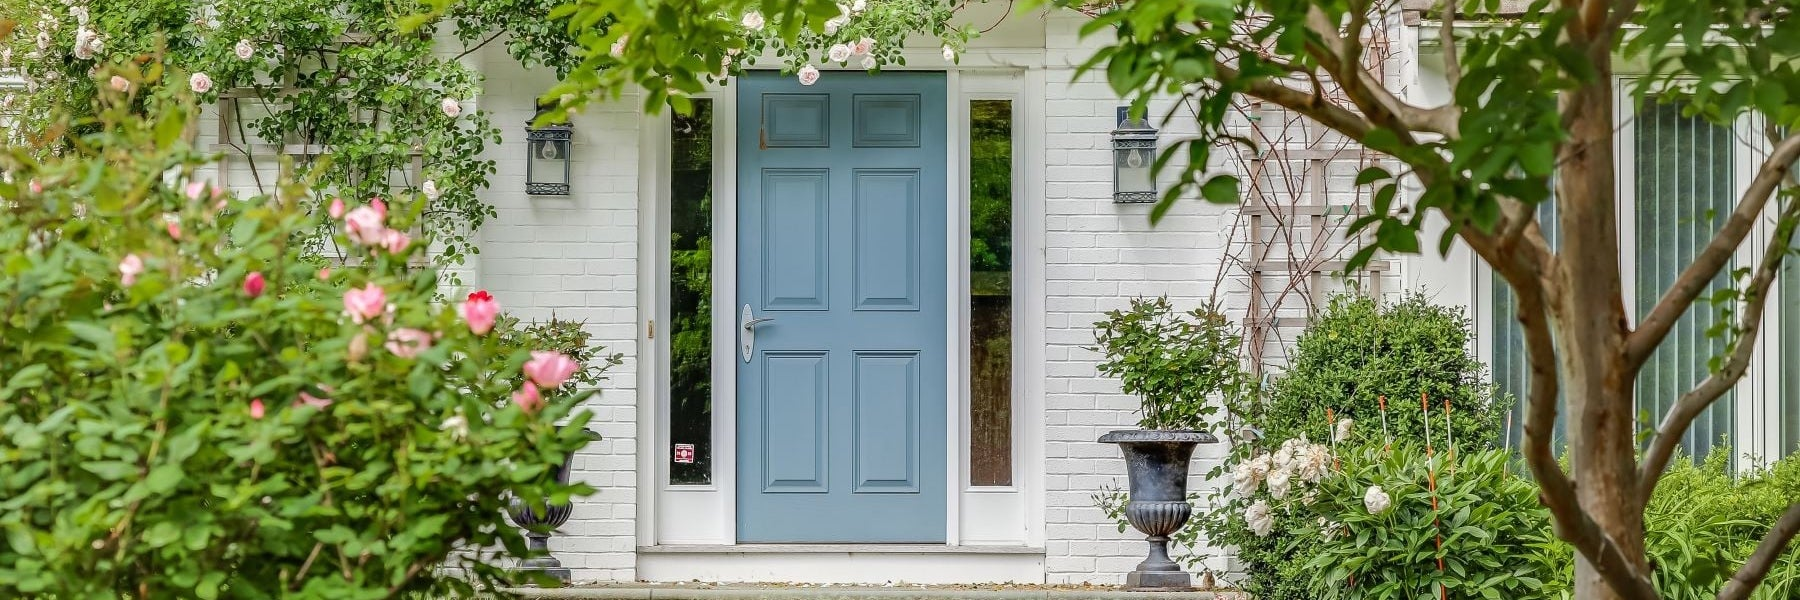 Dramatic Doorways | Five Homes With Colourful Front Doors